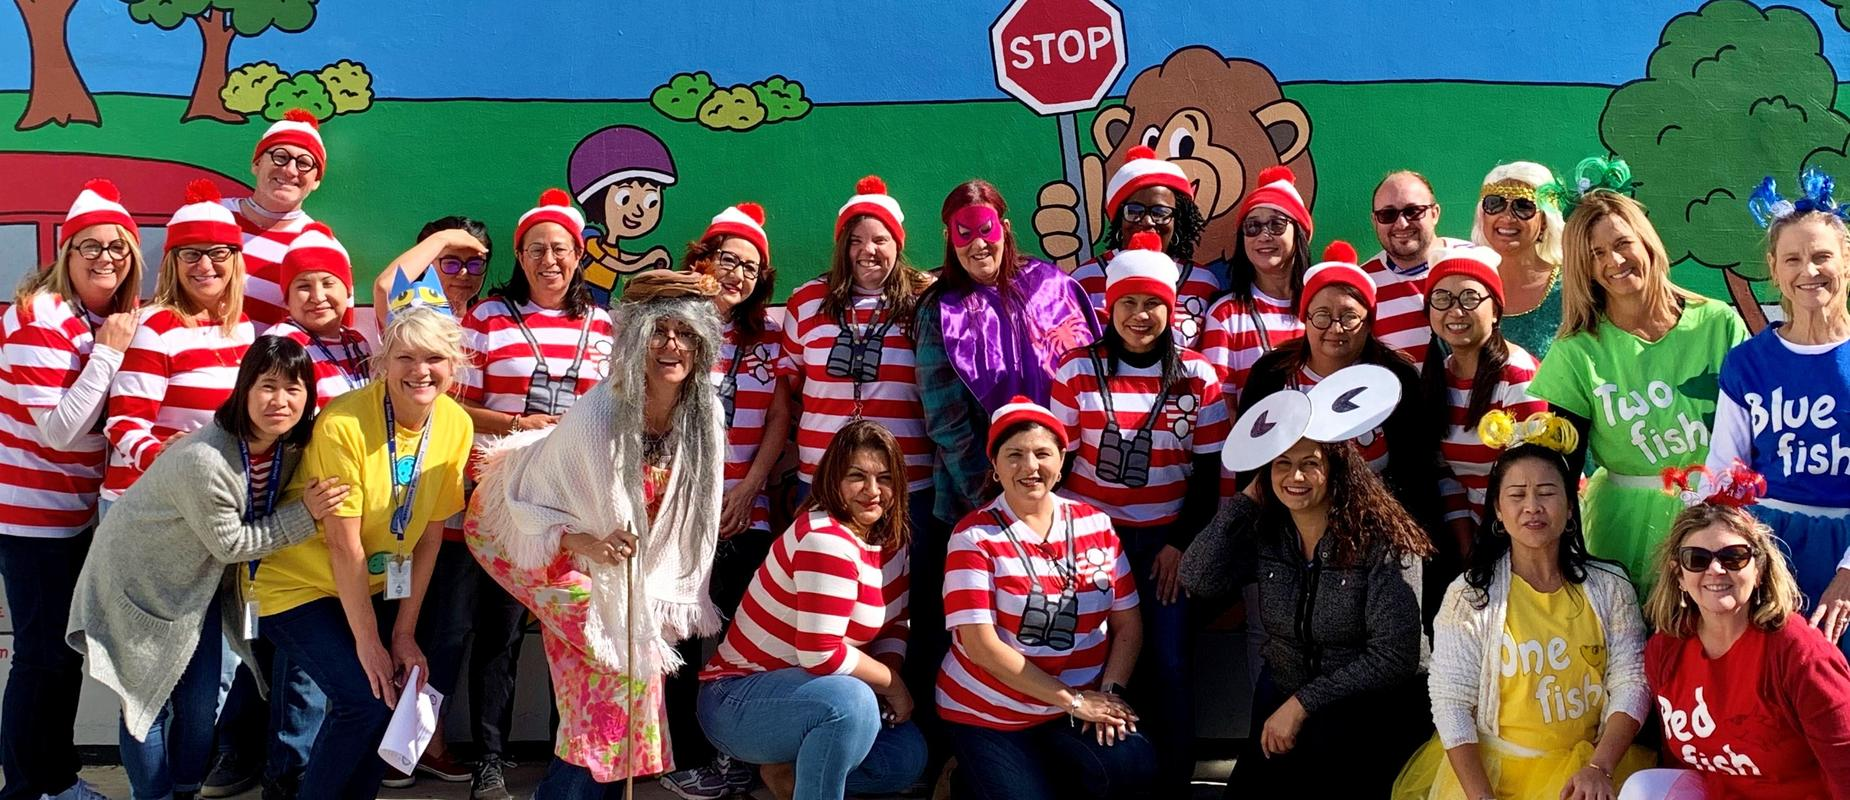 Staff dressed up as Waldo or Dr. Seuss Fish